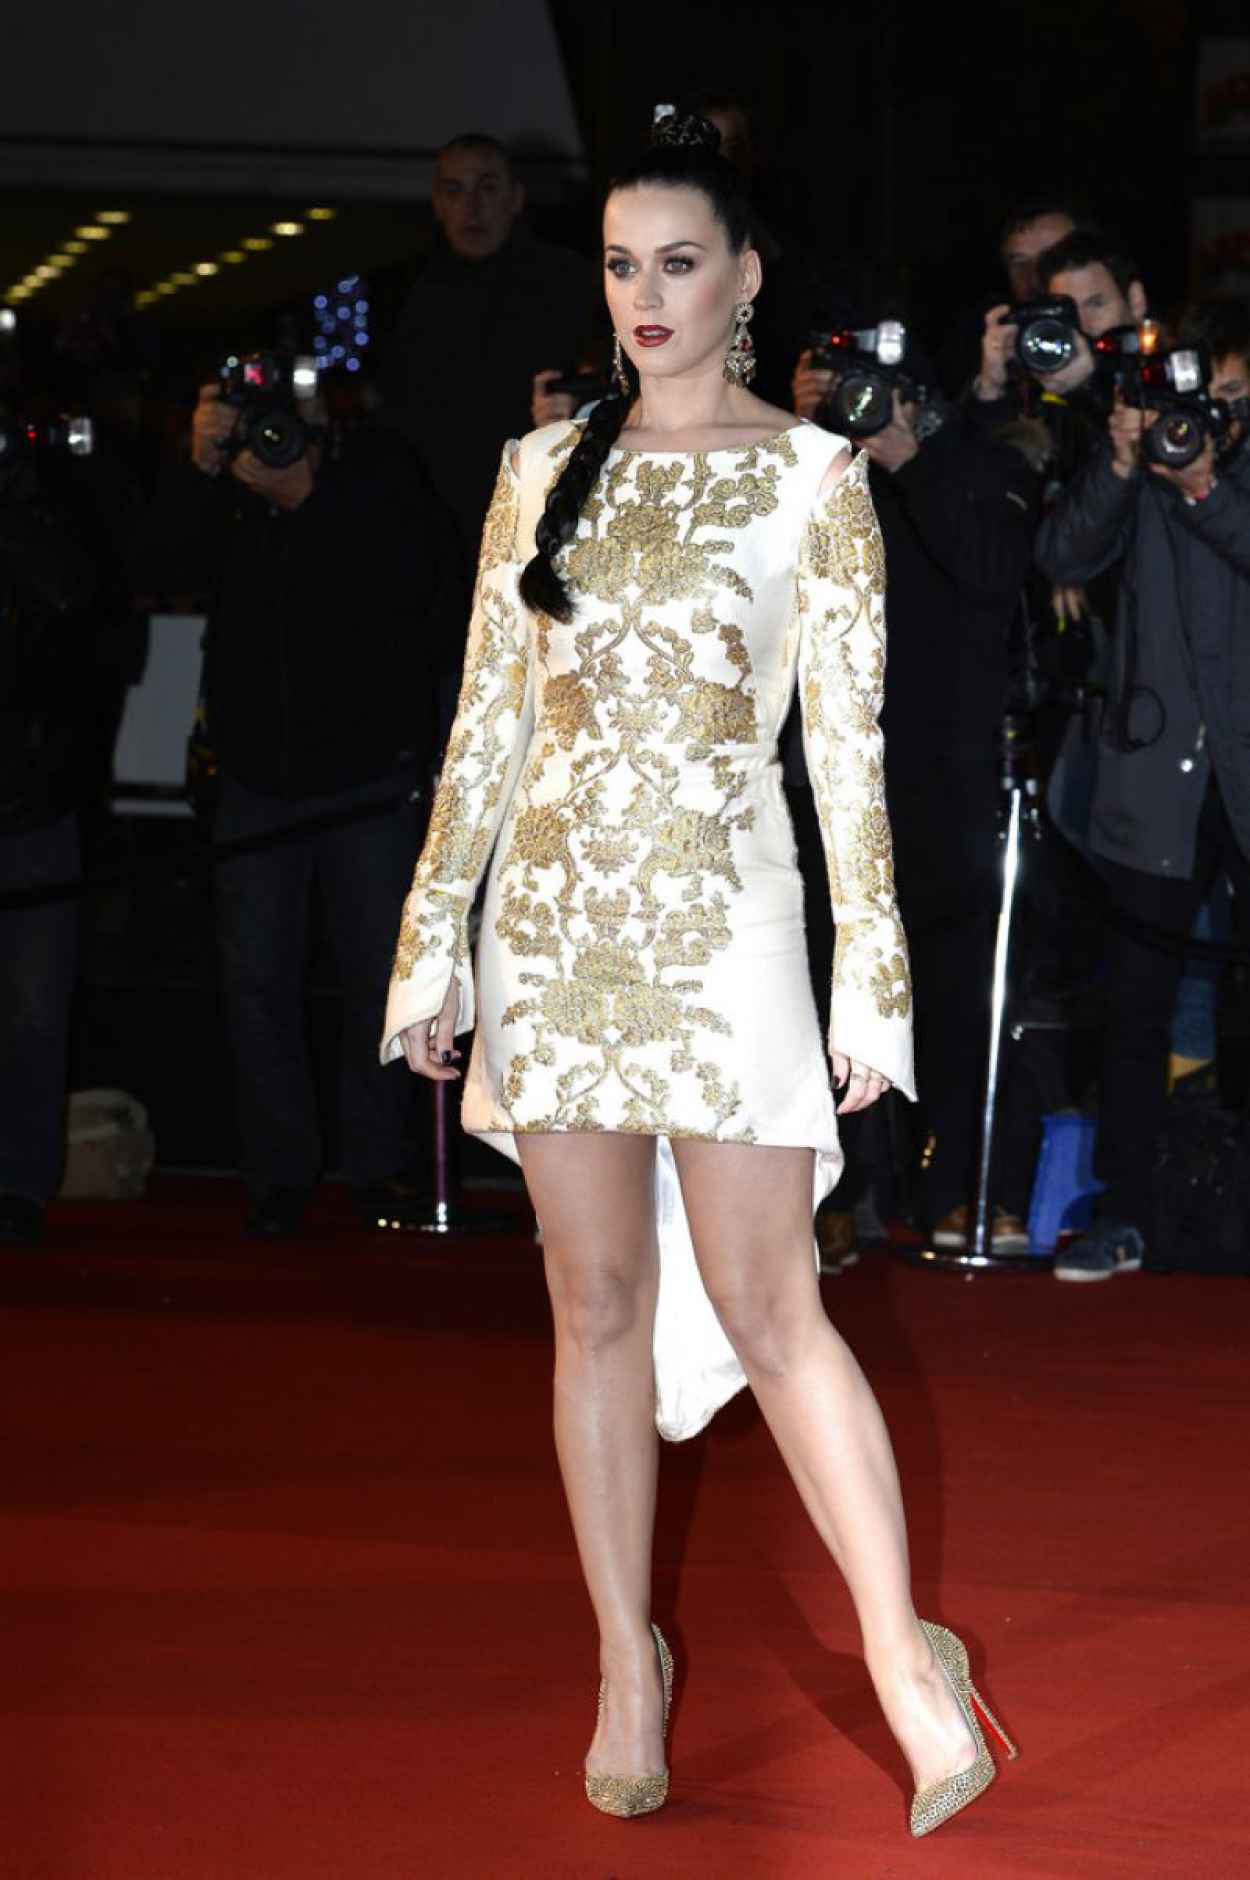 Katy Perry Cannes Red Carpet - 15th NRJ Music Awards - December 2015-1